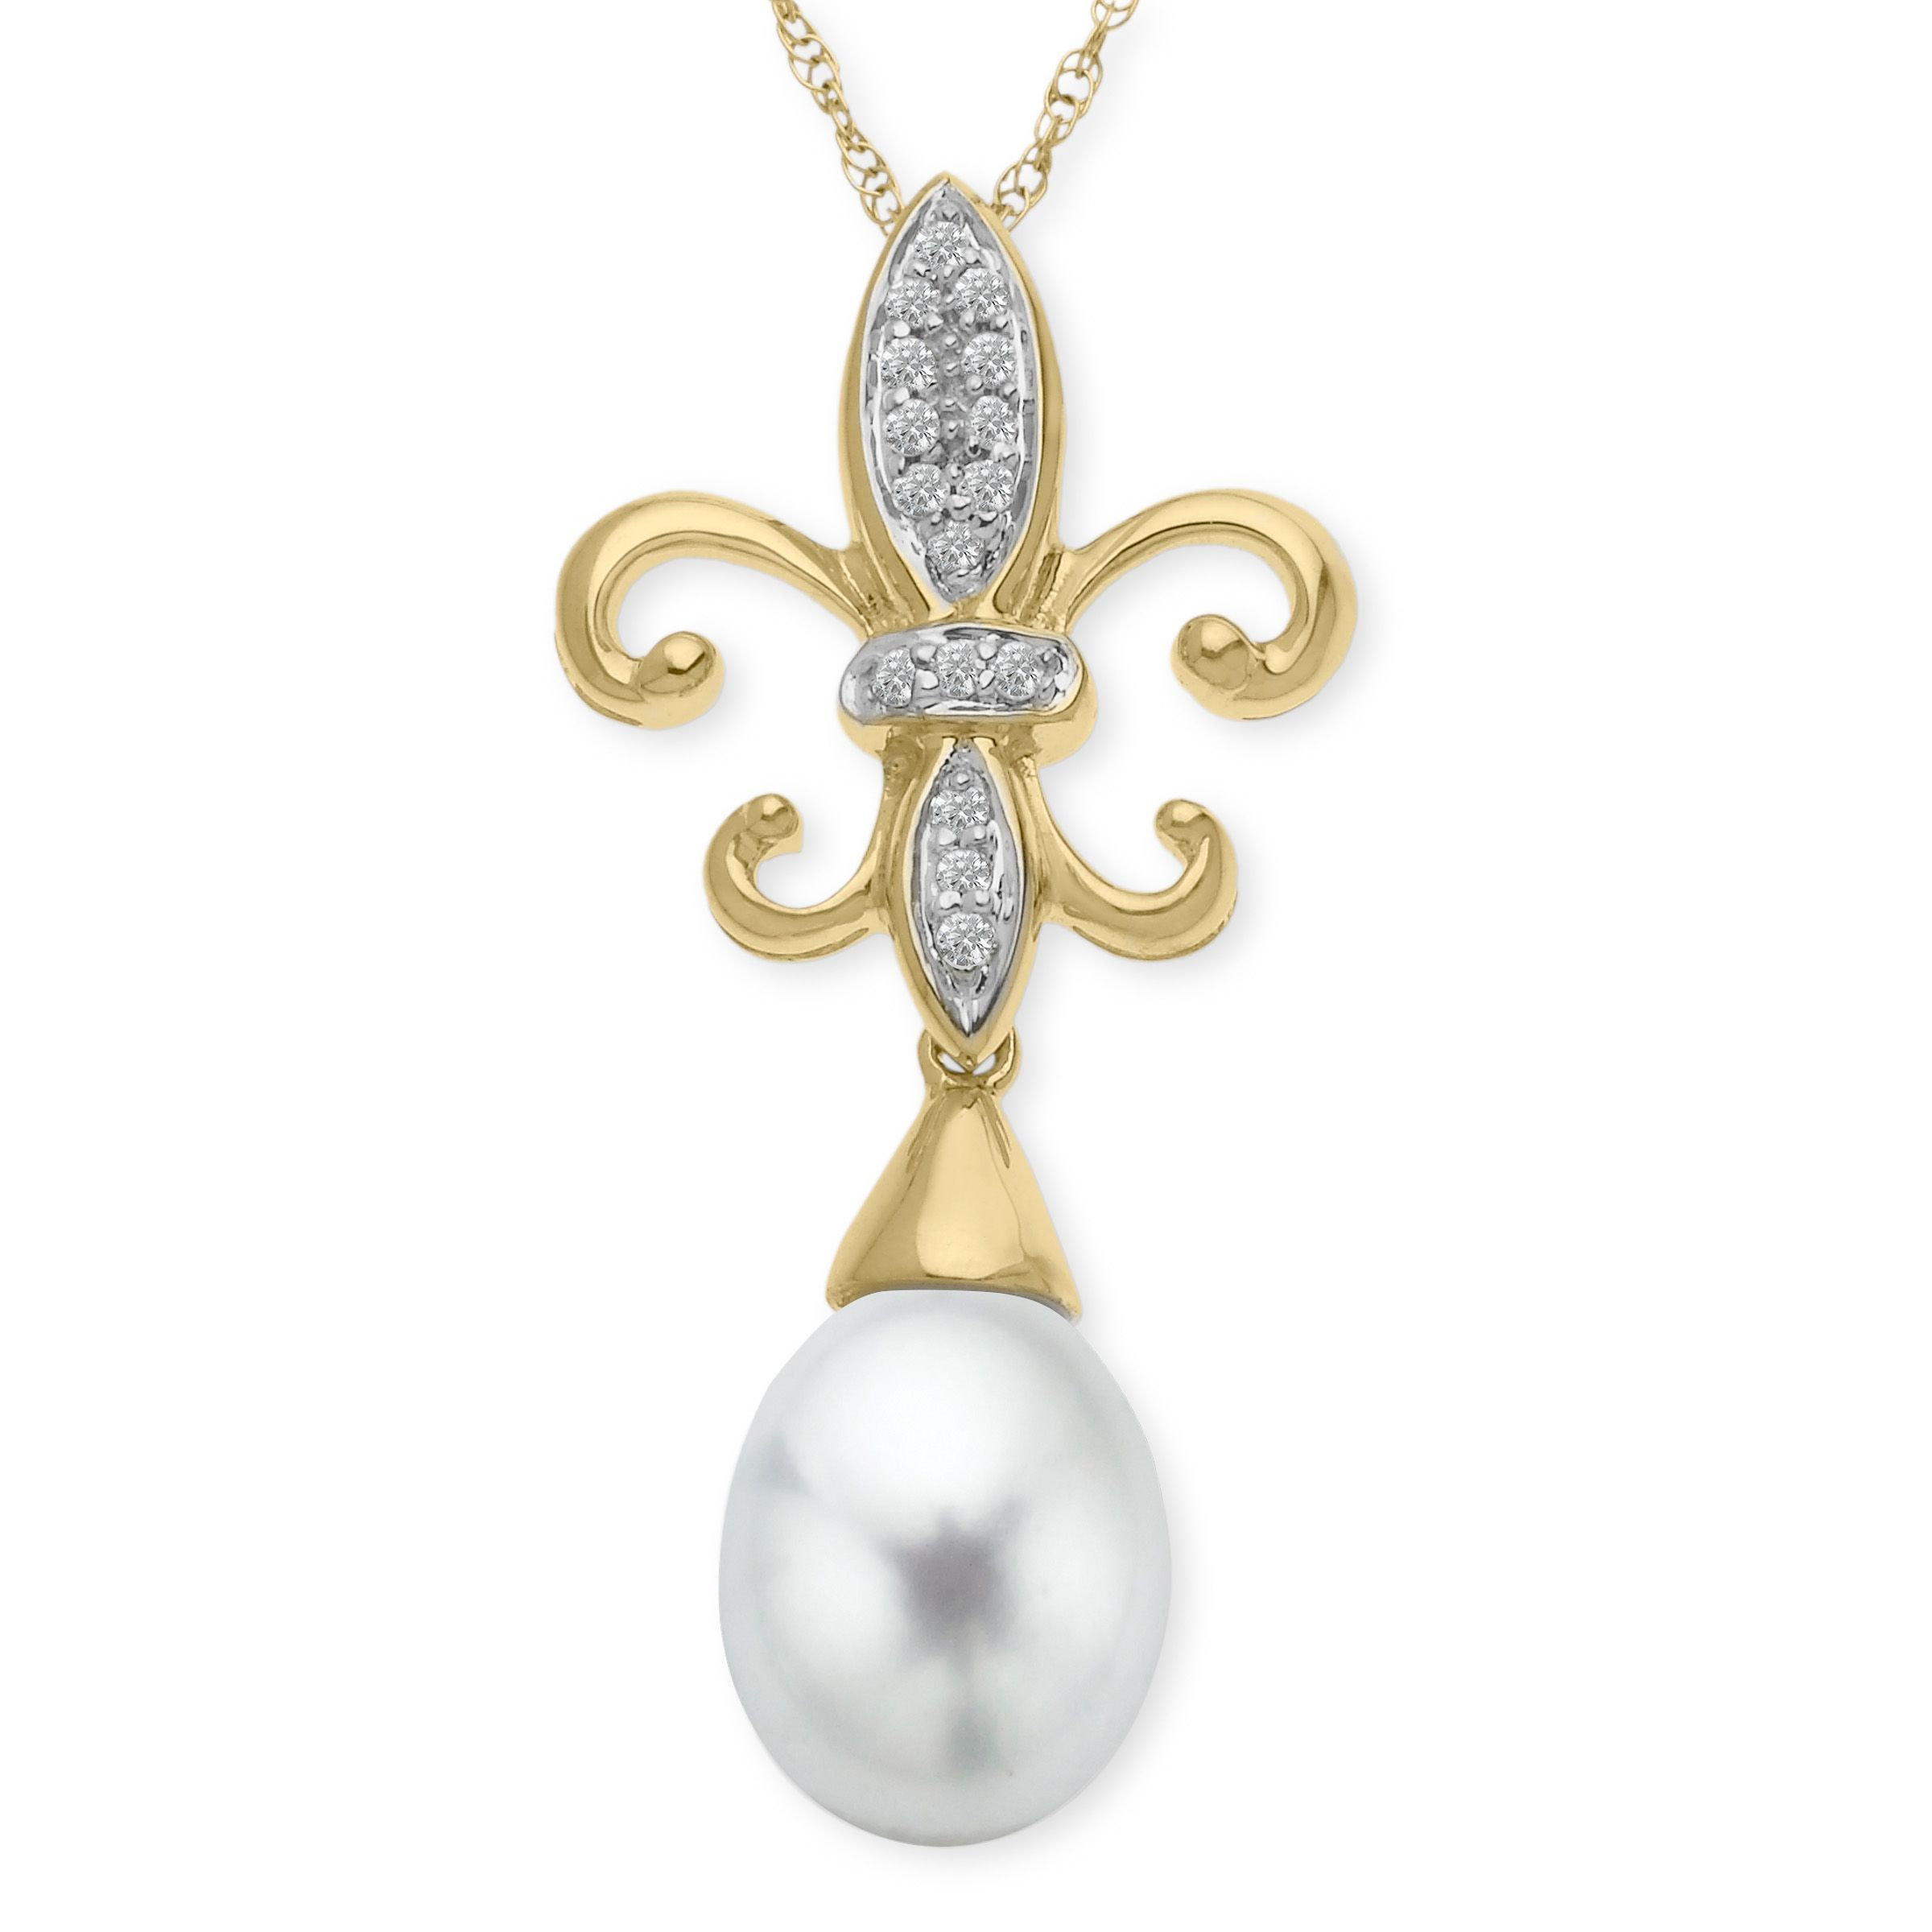 Freshwater Pearl Fleur-De-Lis Pendant Necklace with Diamonds in 10K Gold Commence your reign of style in this regal pendant! A glossy 10x8 mm freshwater pearl drops from a fleur-de-lis lined with diamond accents and crafted in 10K gold. Piece measures 1 1/4 by 1/2 inches. Comes with a 10K gold 18-inch rope chain.